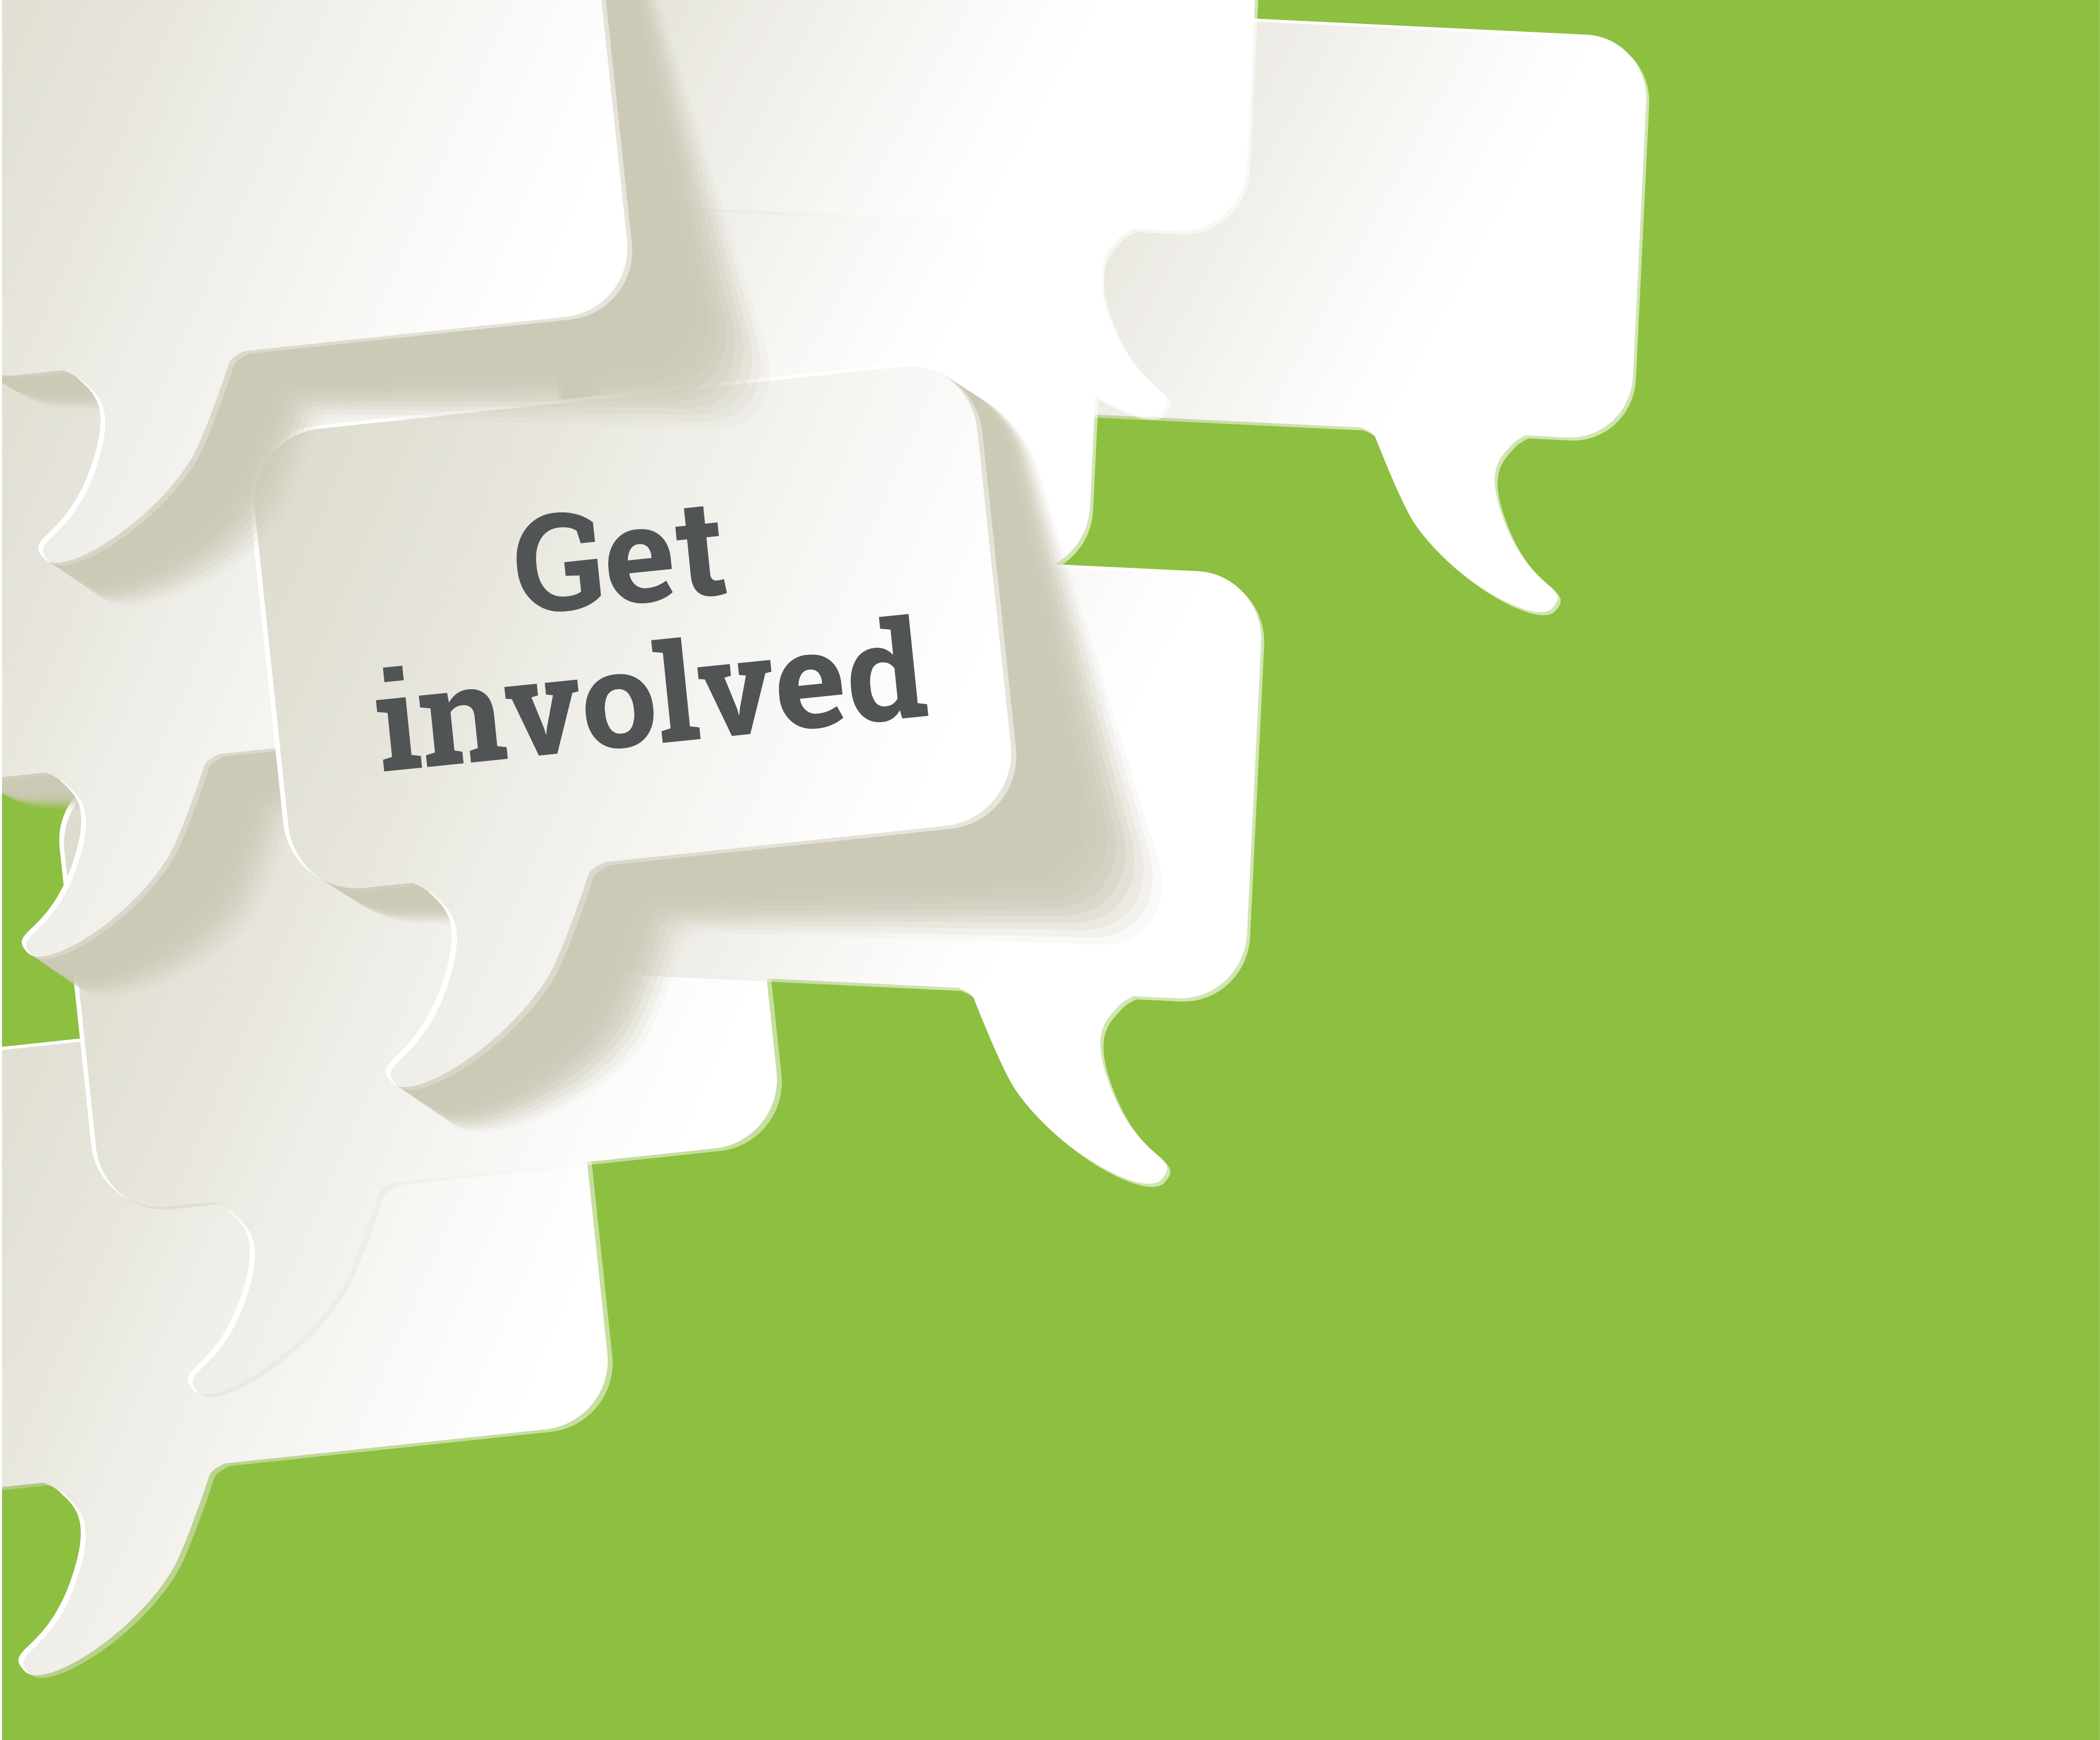 White speech bubbles set against a green background, with the caption 'get involved'